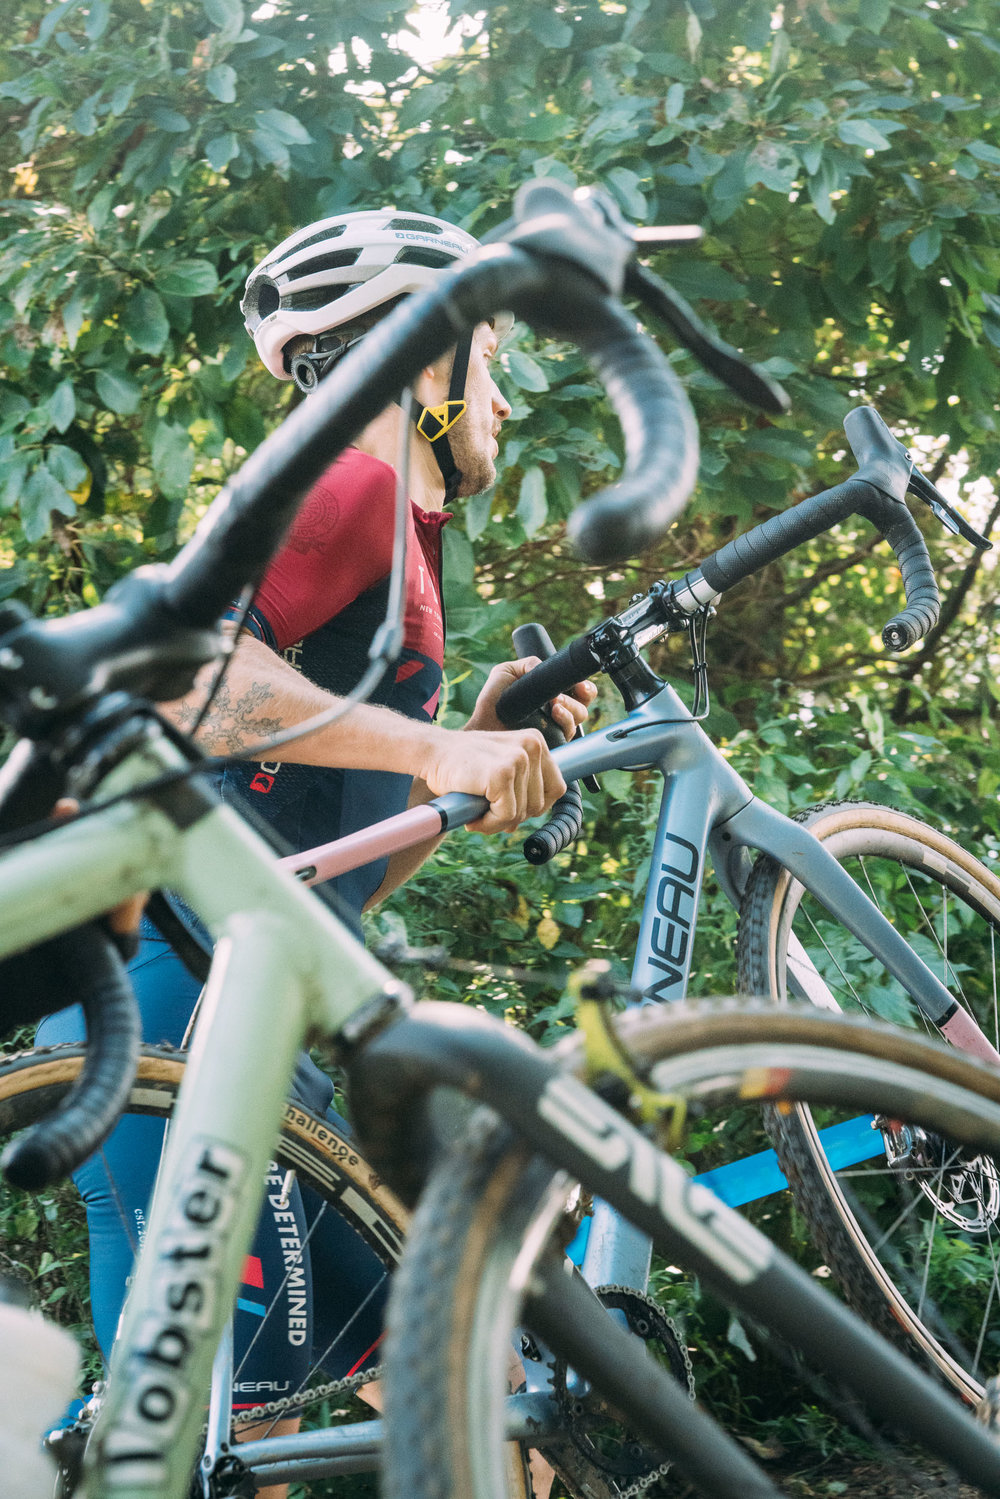 photo-rhetoric-to-be-determined-nittany-cyclocross-1173.jpg